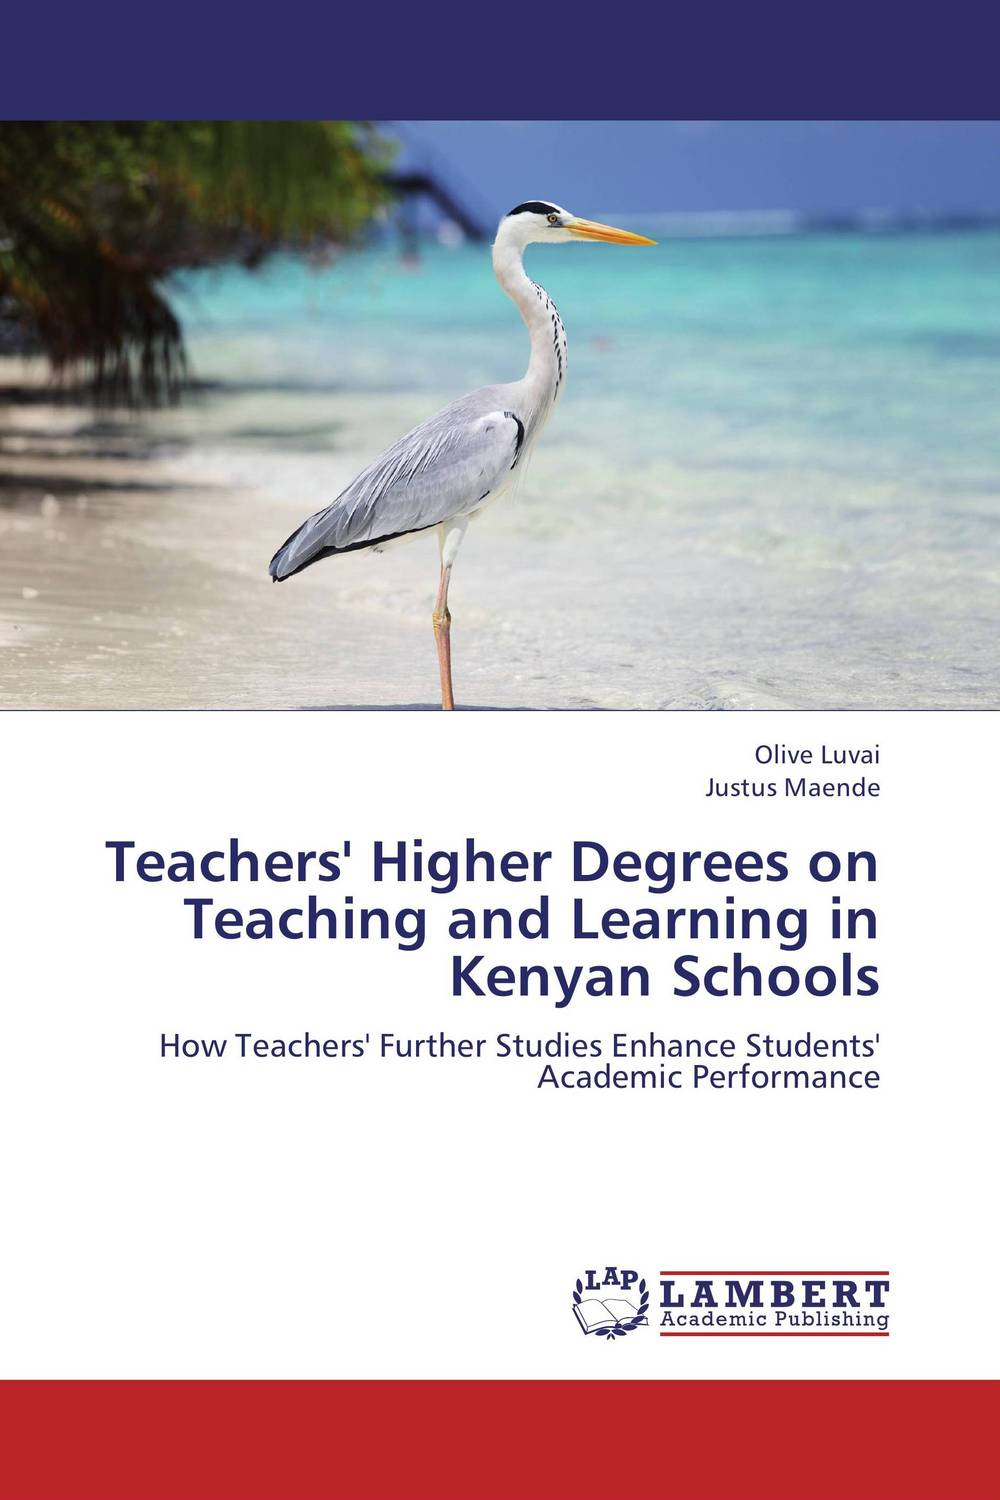 Teachers' Higher Degrees on Teaching and Learning in Kenyan Schools the use of instructional materials in the pedagogy of english